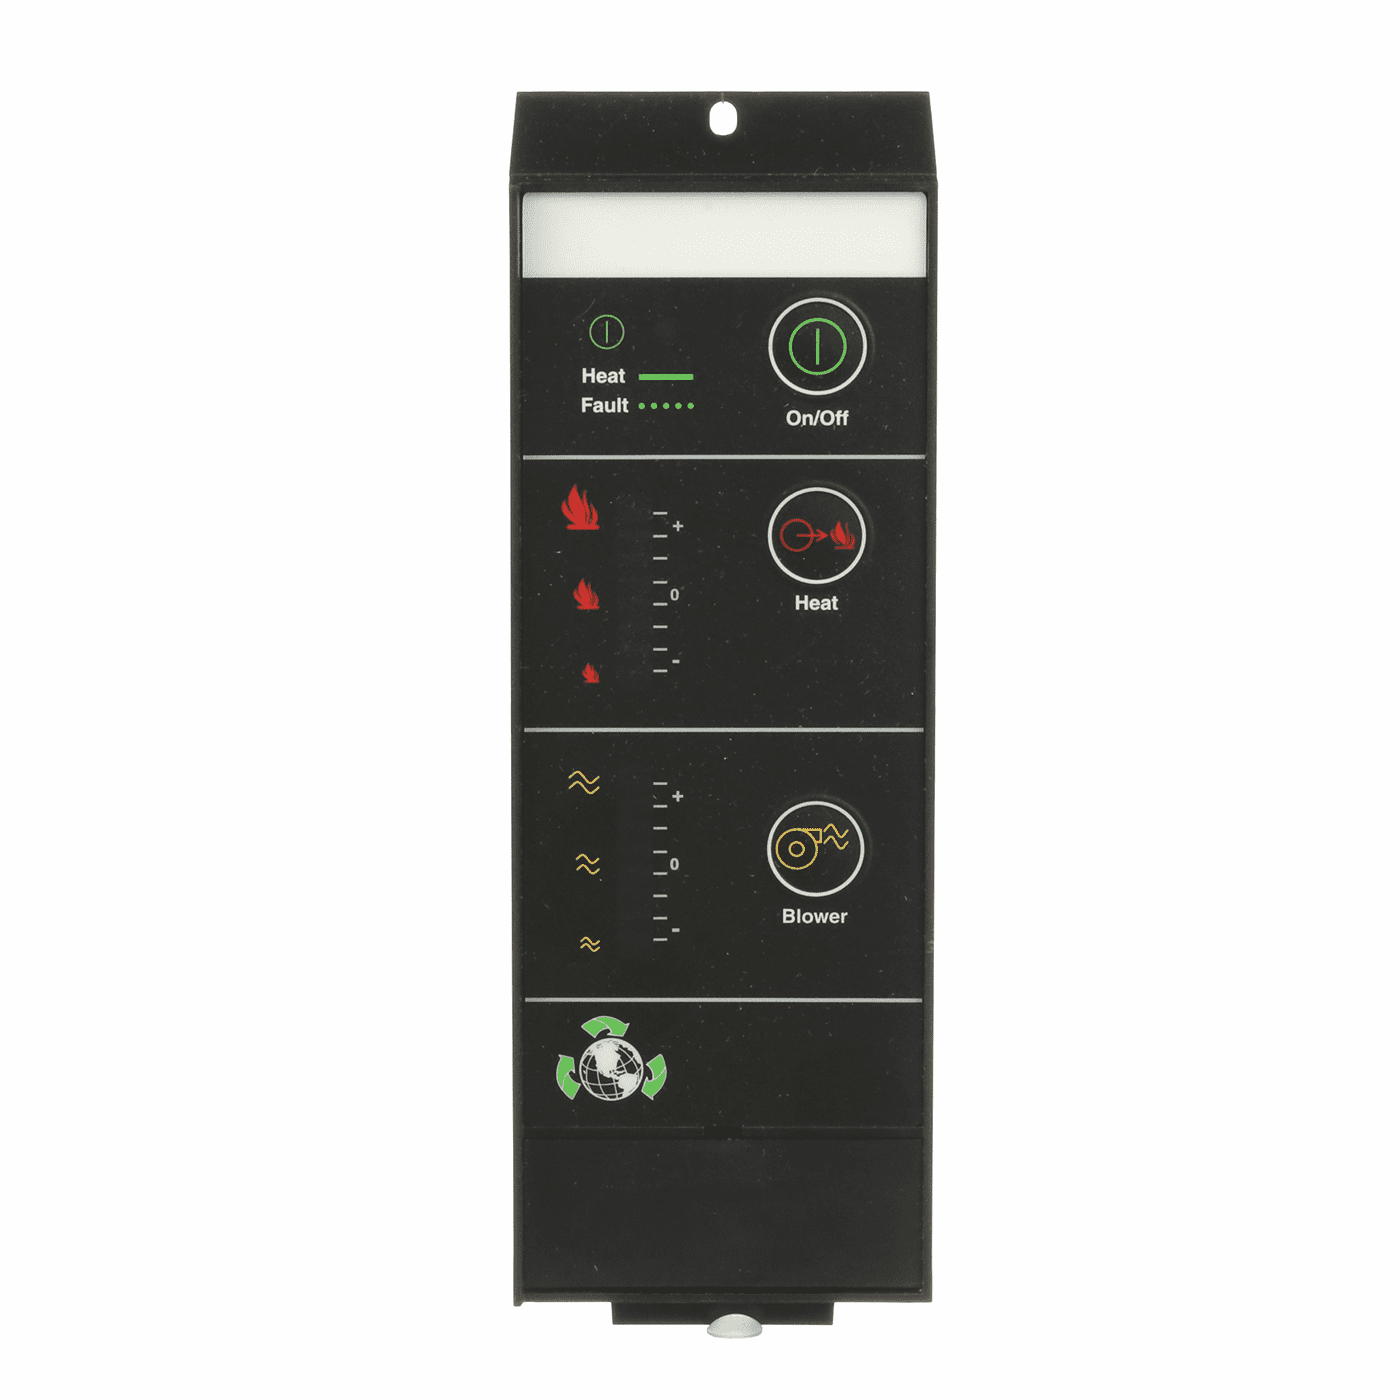 16052112 | Whitfield Control Board for Profile 30 & Optima 3 # 16052112